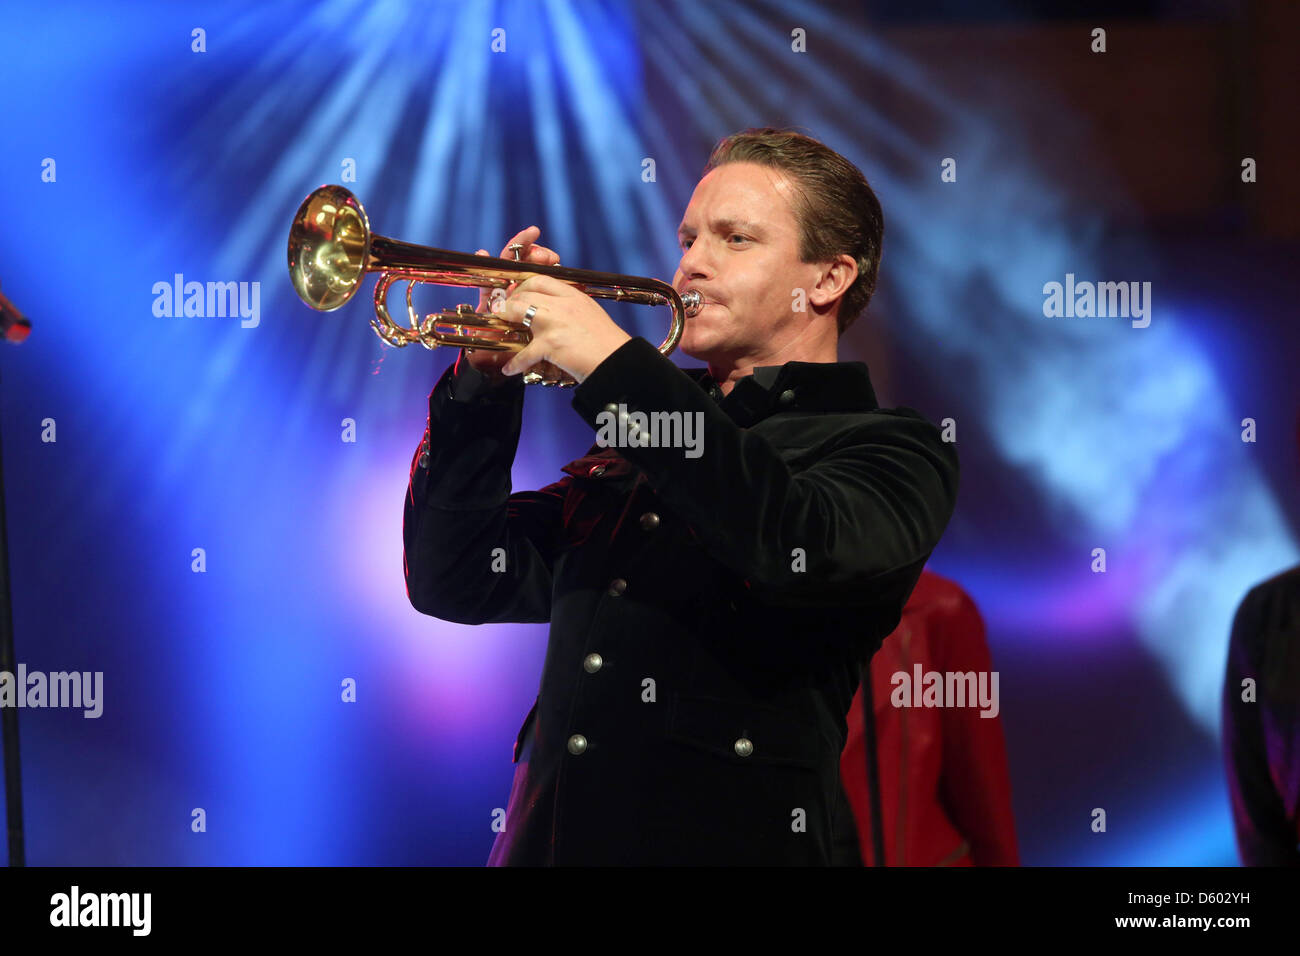 Stefan Mross is  pictured on stage during the dress rehearsal for the traditional folk music show Musikantenstadl - Stock Image